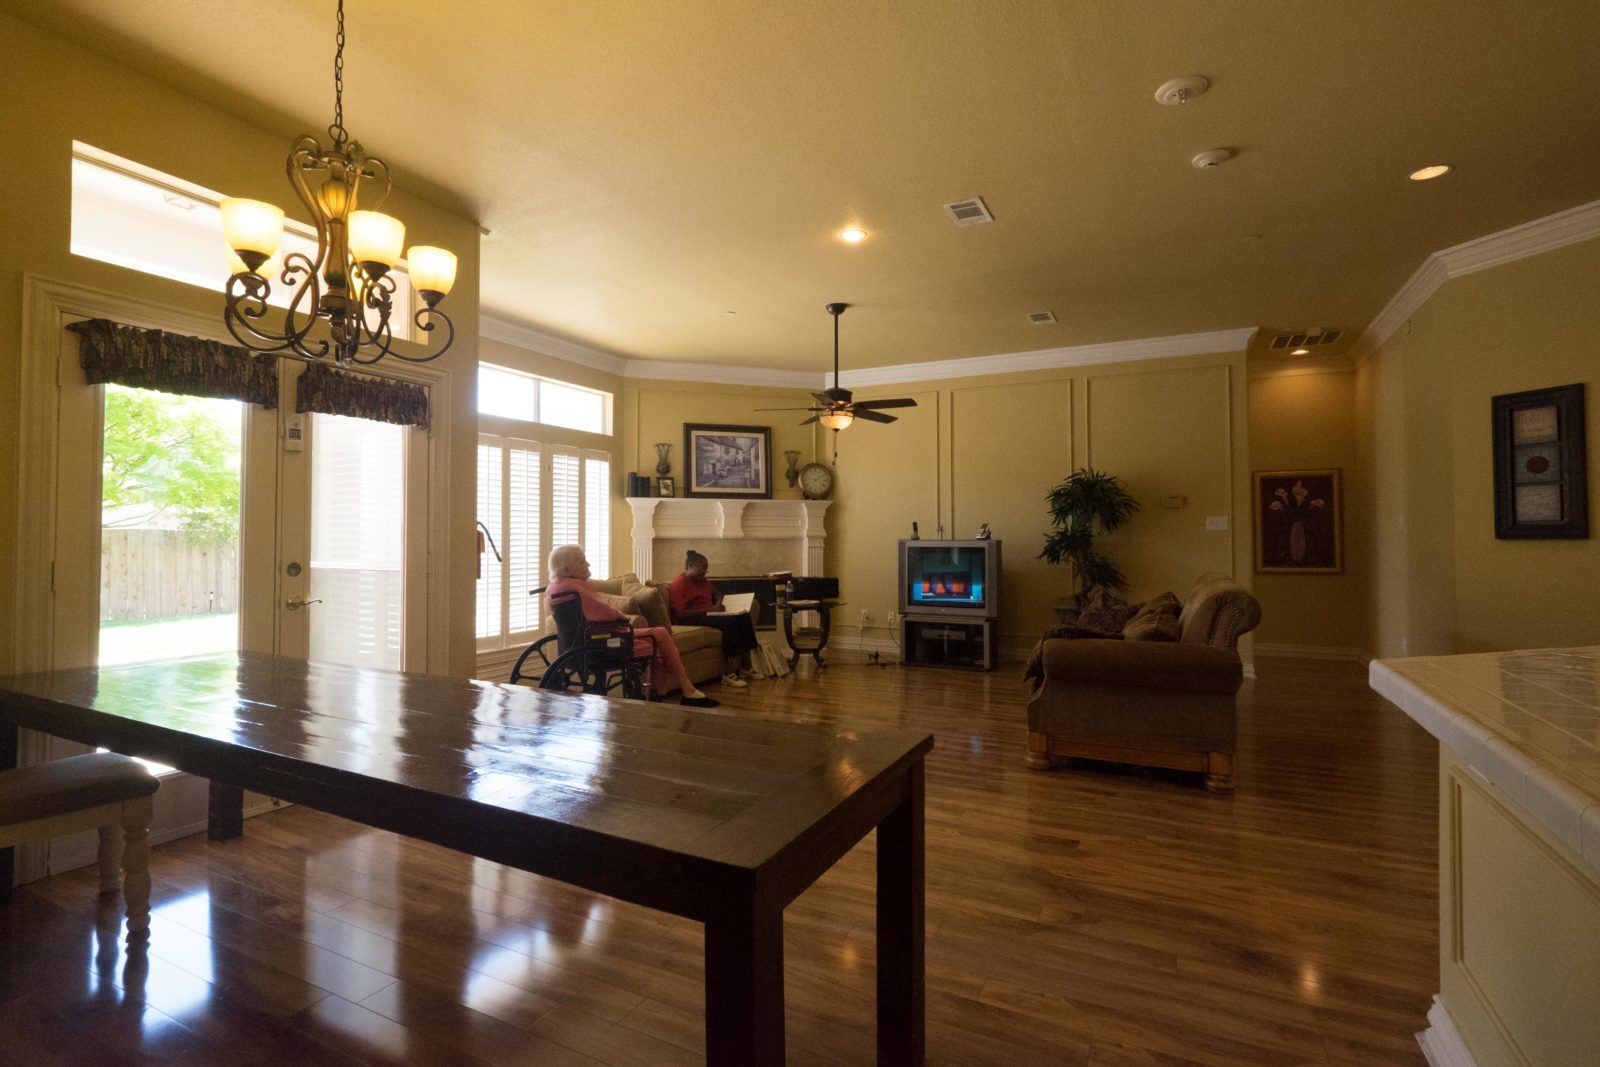 3 Assisted Living Care Homes Business Dallas / Plano ...